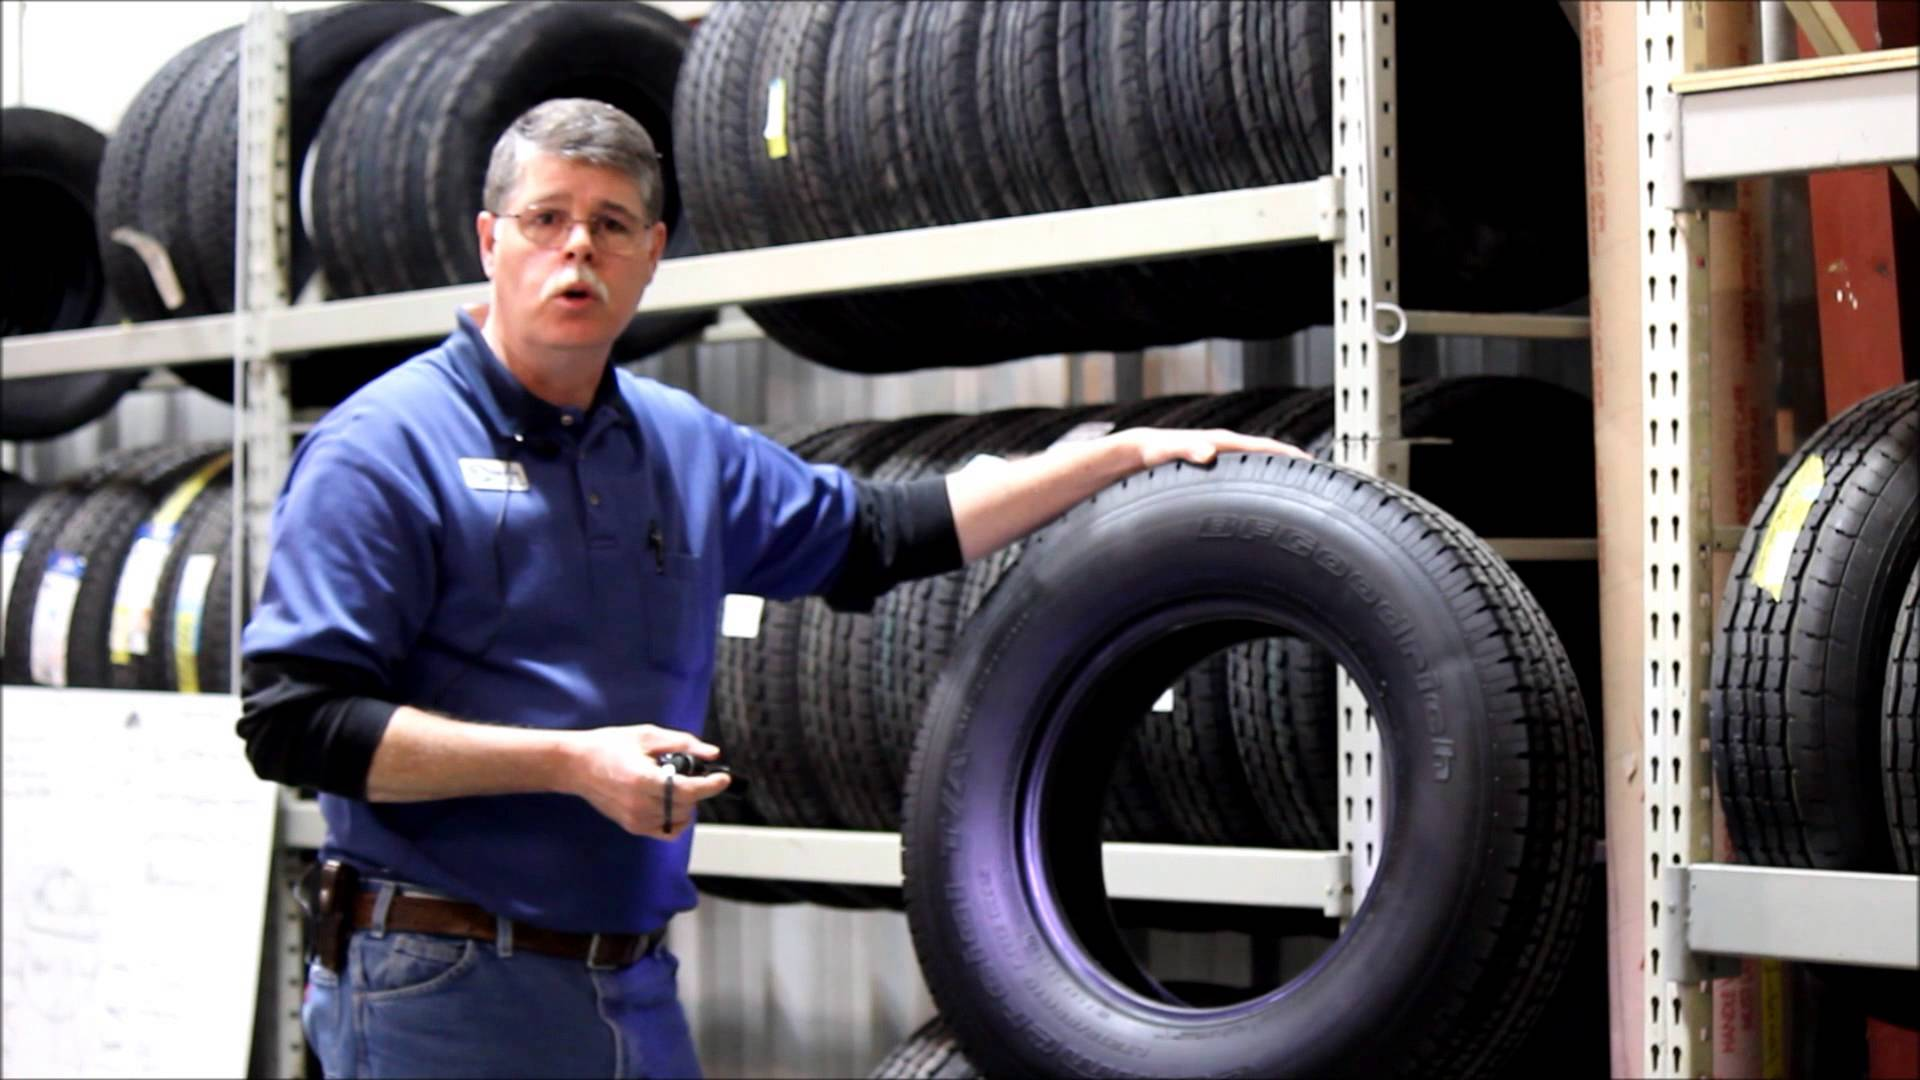 Trailer Tires, ST Tires vs LT Tires vs Passenger Car Tires ~ The Right Tires for your Trailer